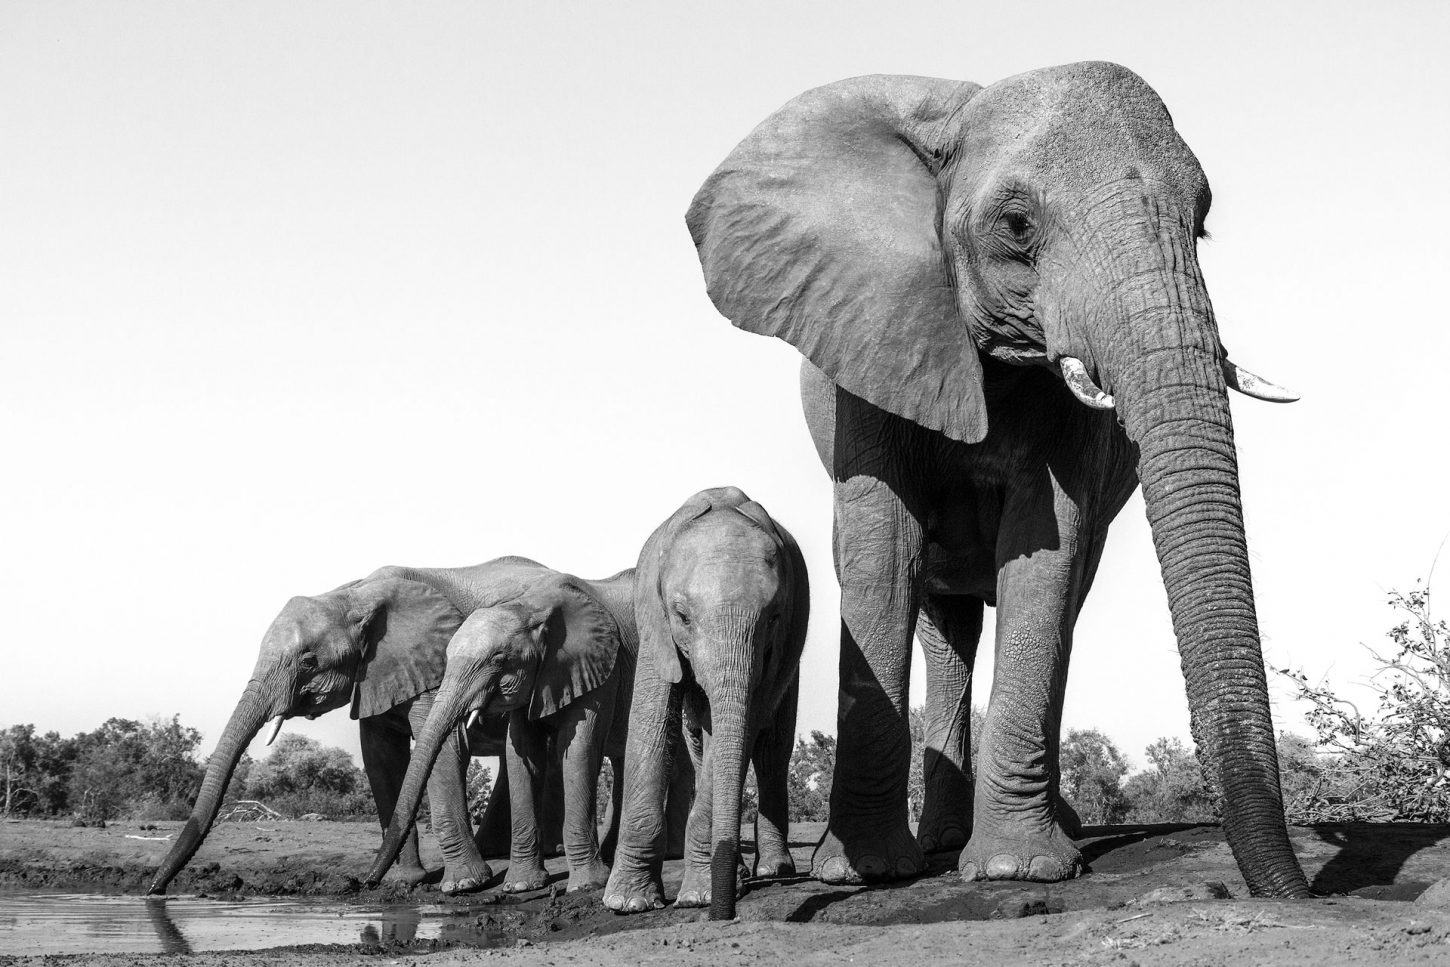 Herd of elephants at waterhole in black and white